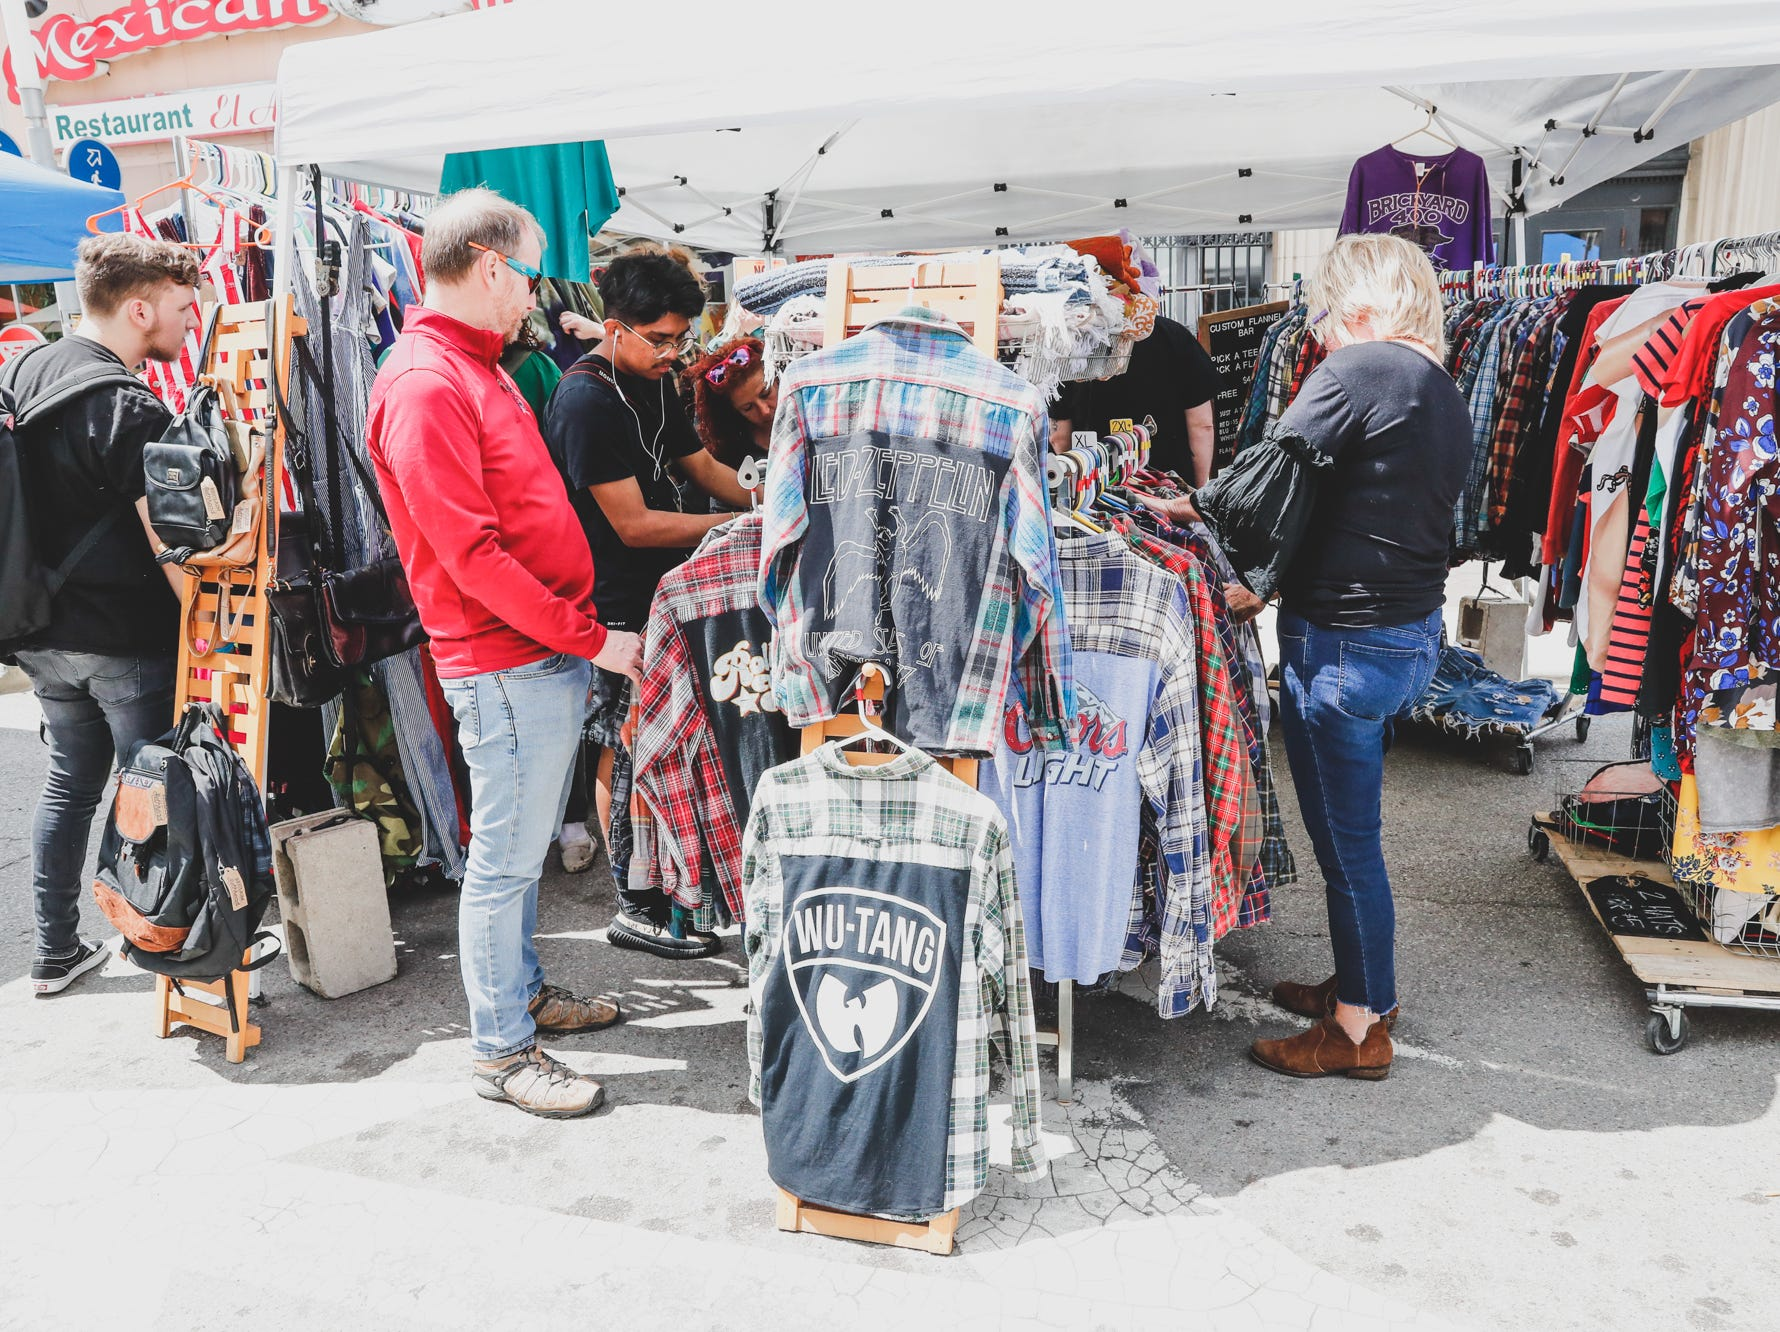 Guests shop at the Reclaim and Rethread booth during the Virginia Avenue Music Fest, held in Fountain Square, located in Indianapolis, on Saturday, May 11, 2019.